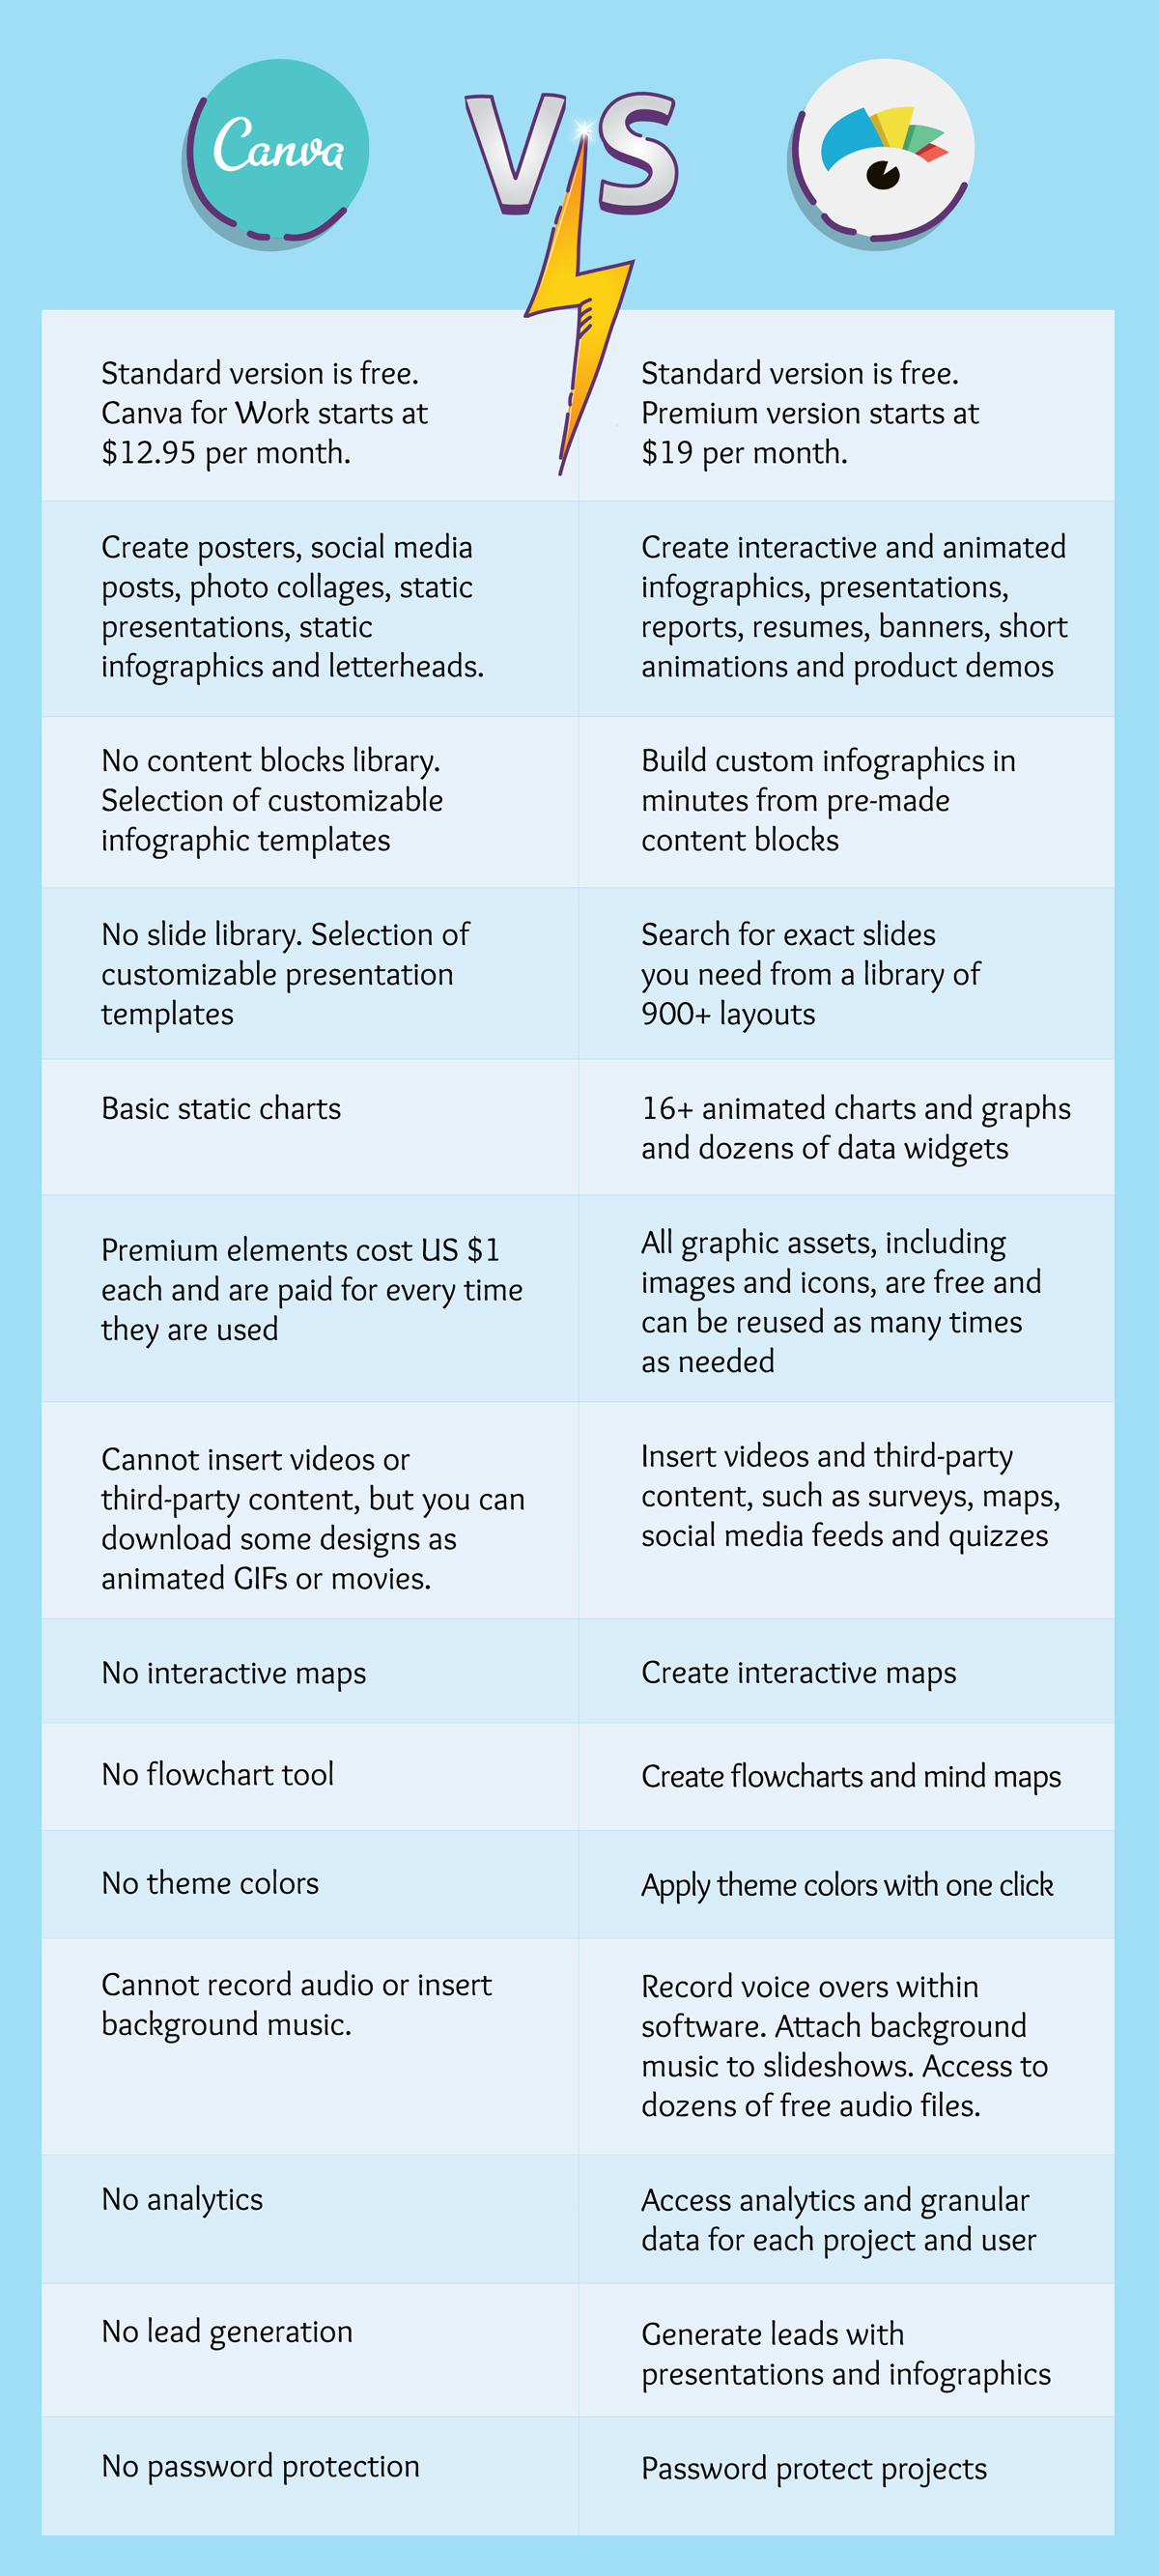 Canva Alternatives: A Visual Guide Comparing Visme and Canva